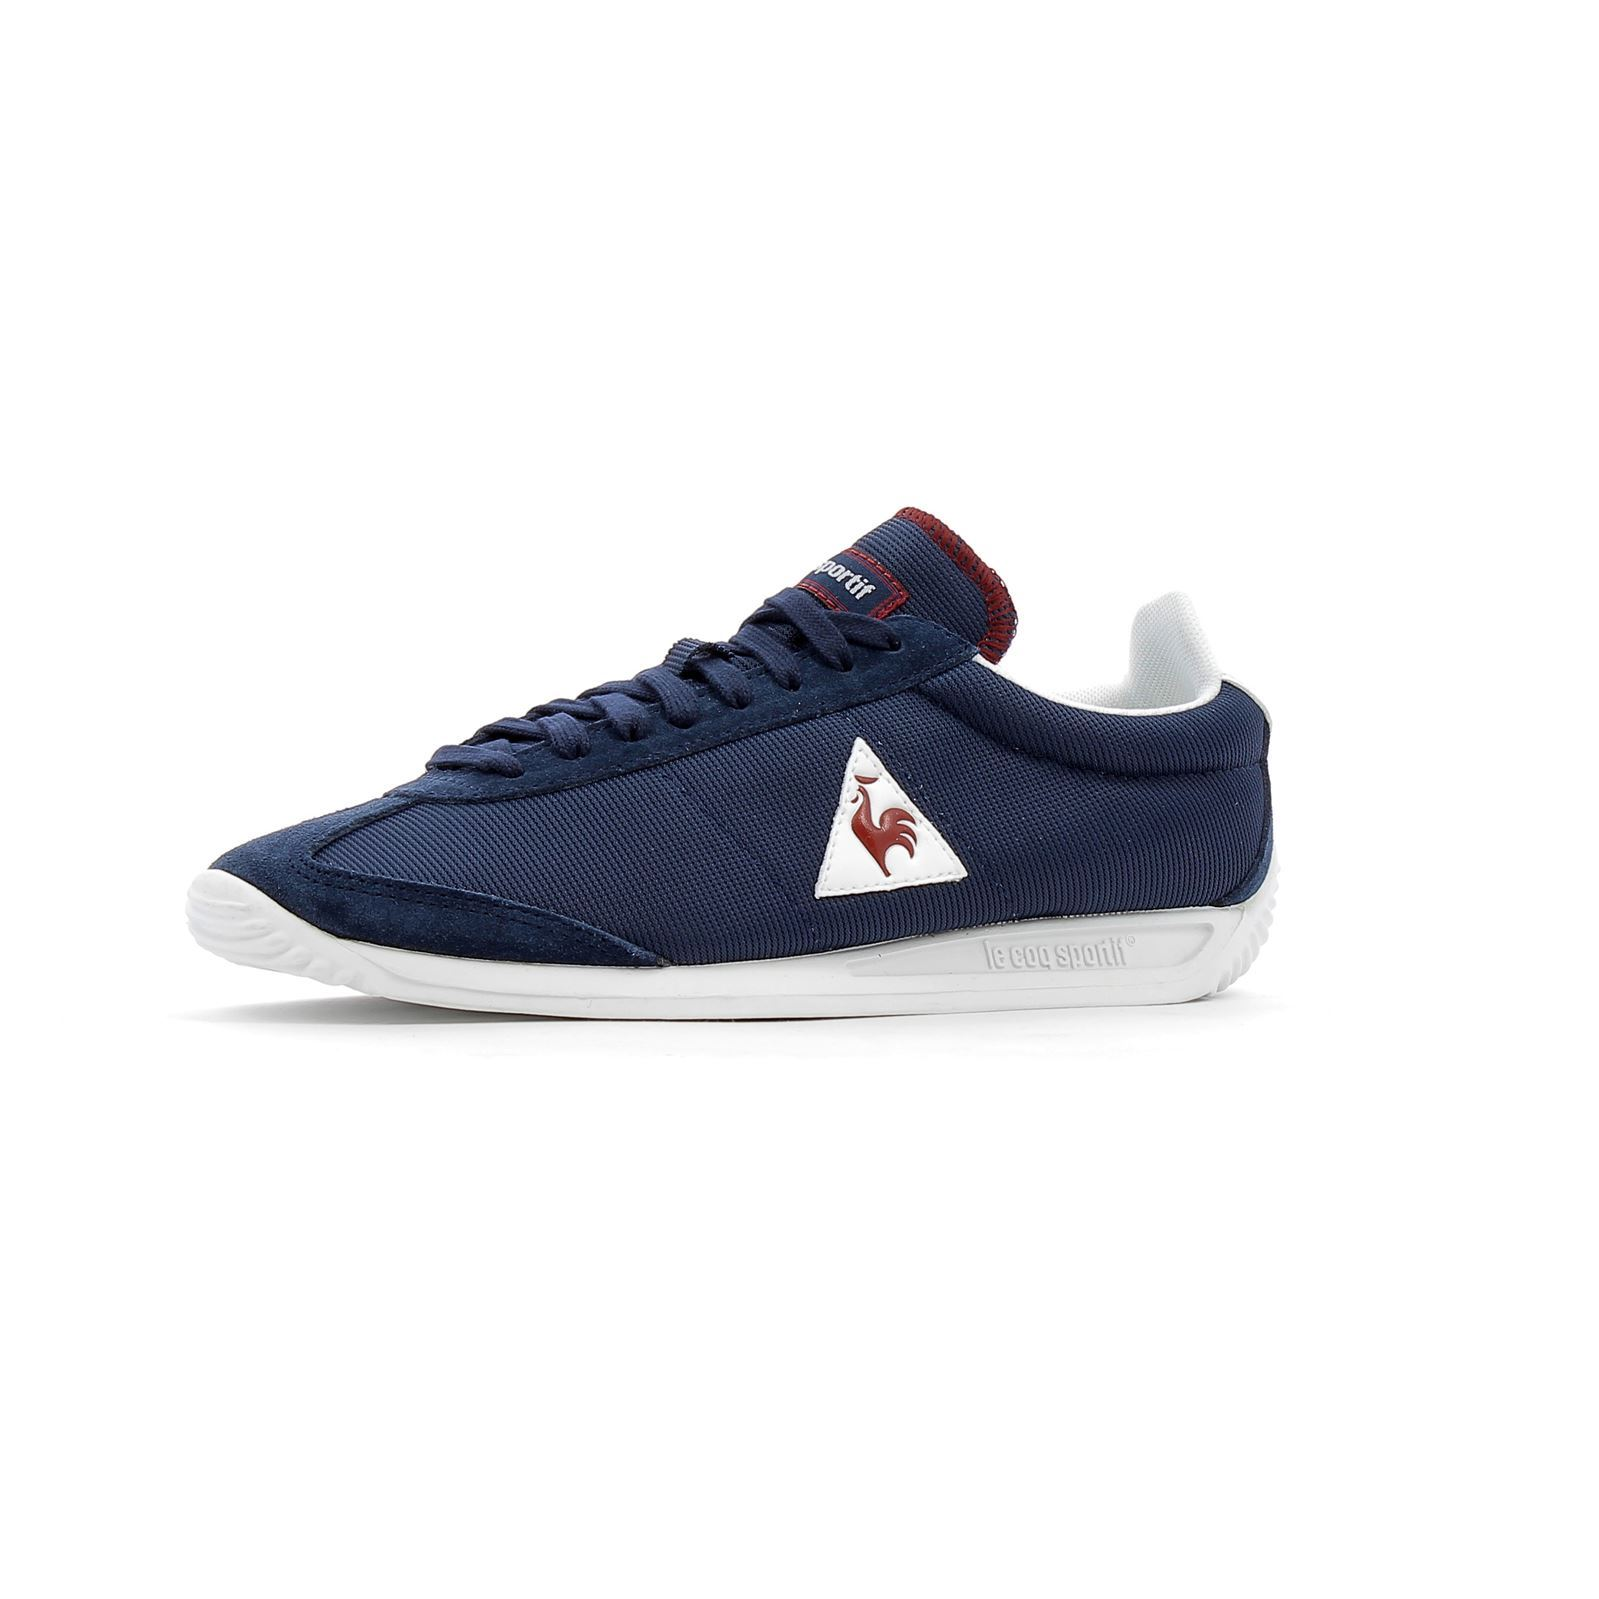 ecb6395857182 Le Coq Sportif Quartz nylon - Baskets - bleu   BrandAlley